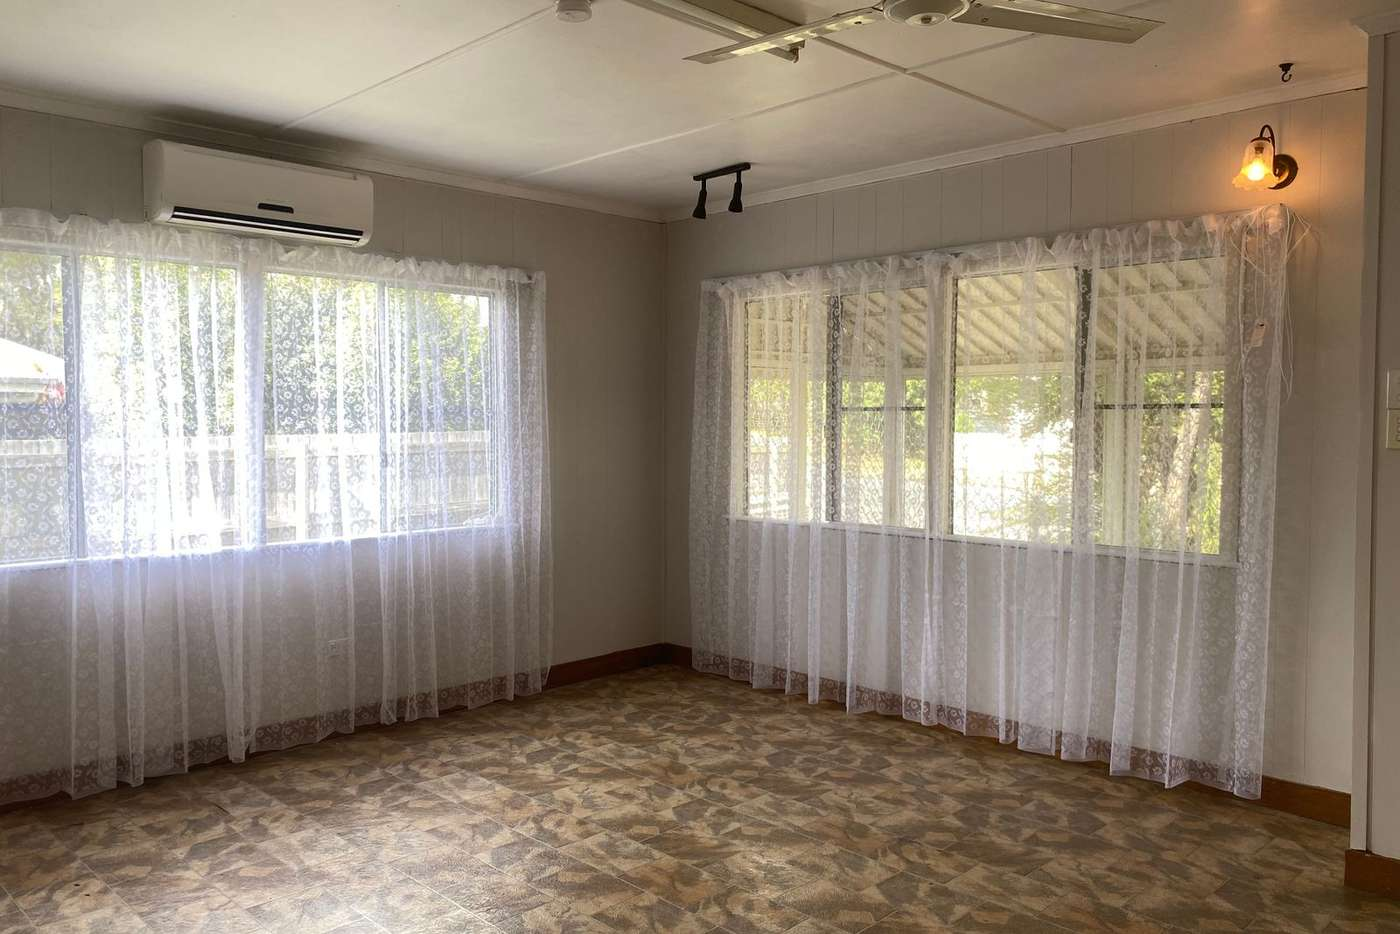 Seventh view of Homely house listing, 9 Place Avenue, Sarina QLD 4737